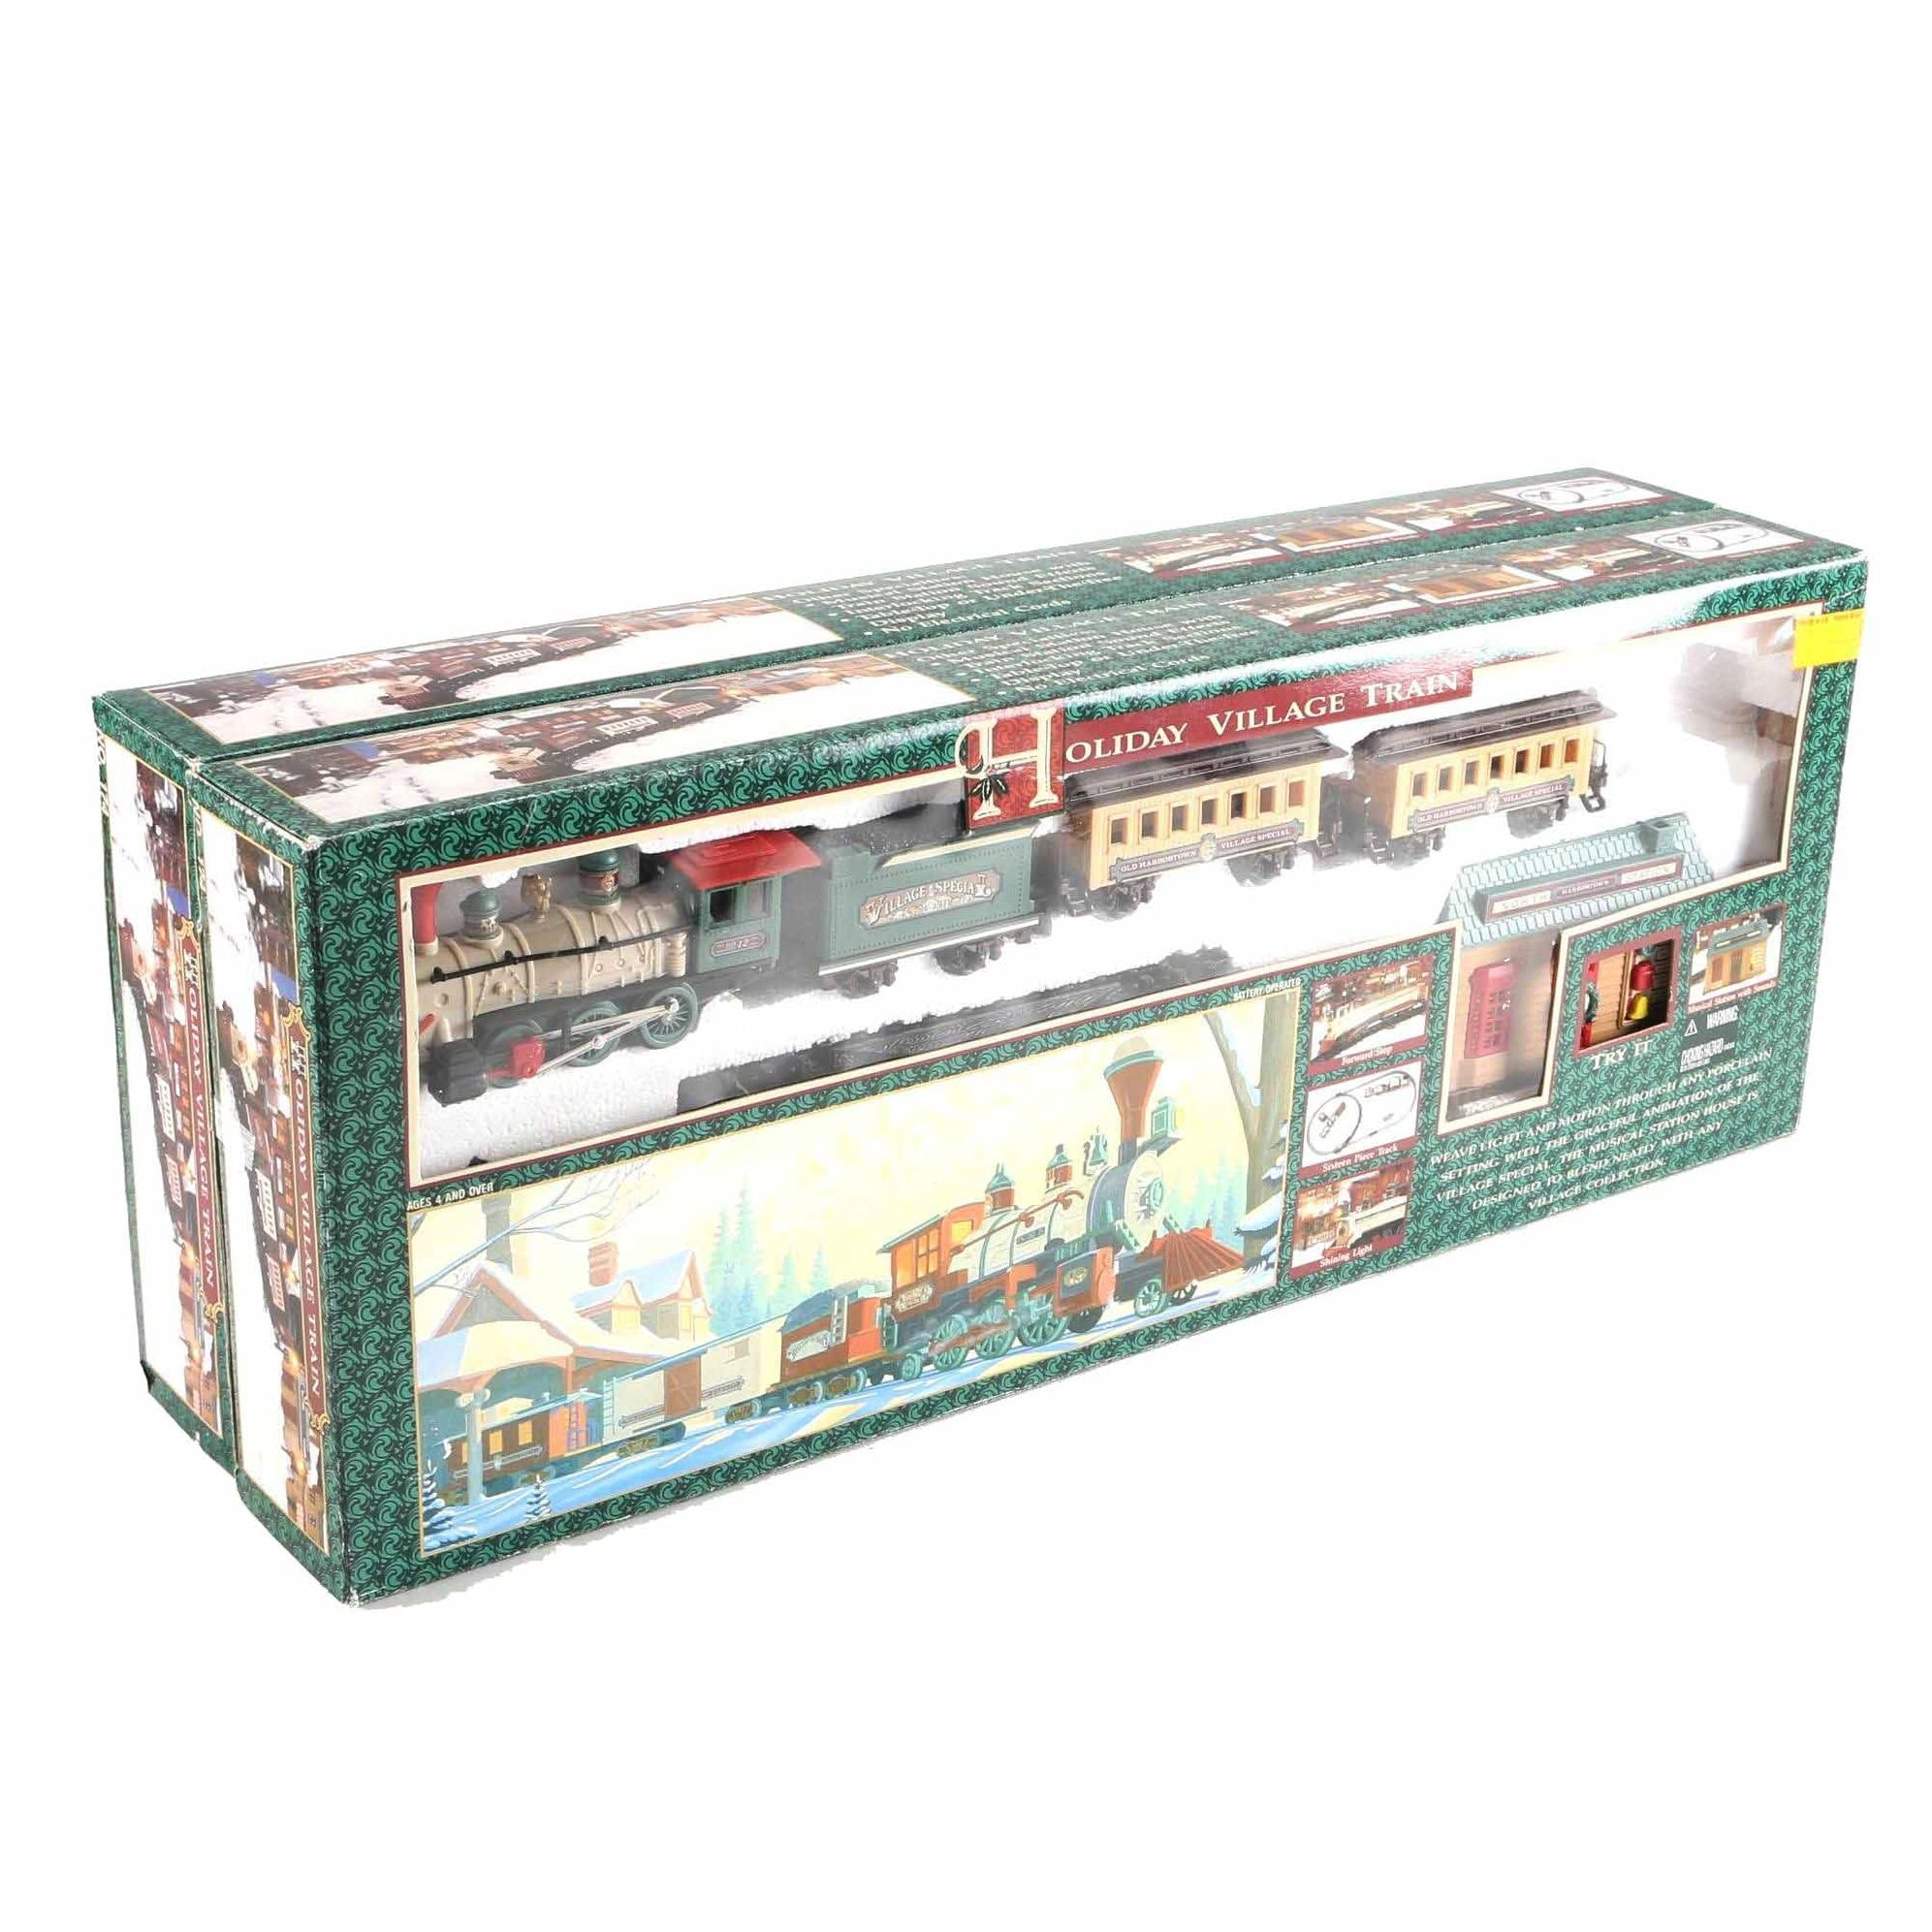 Pair of Holiday Village Train Sets